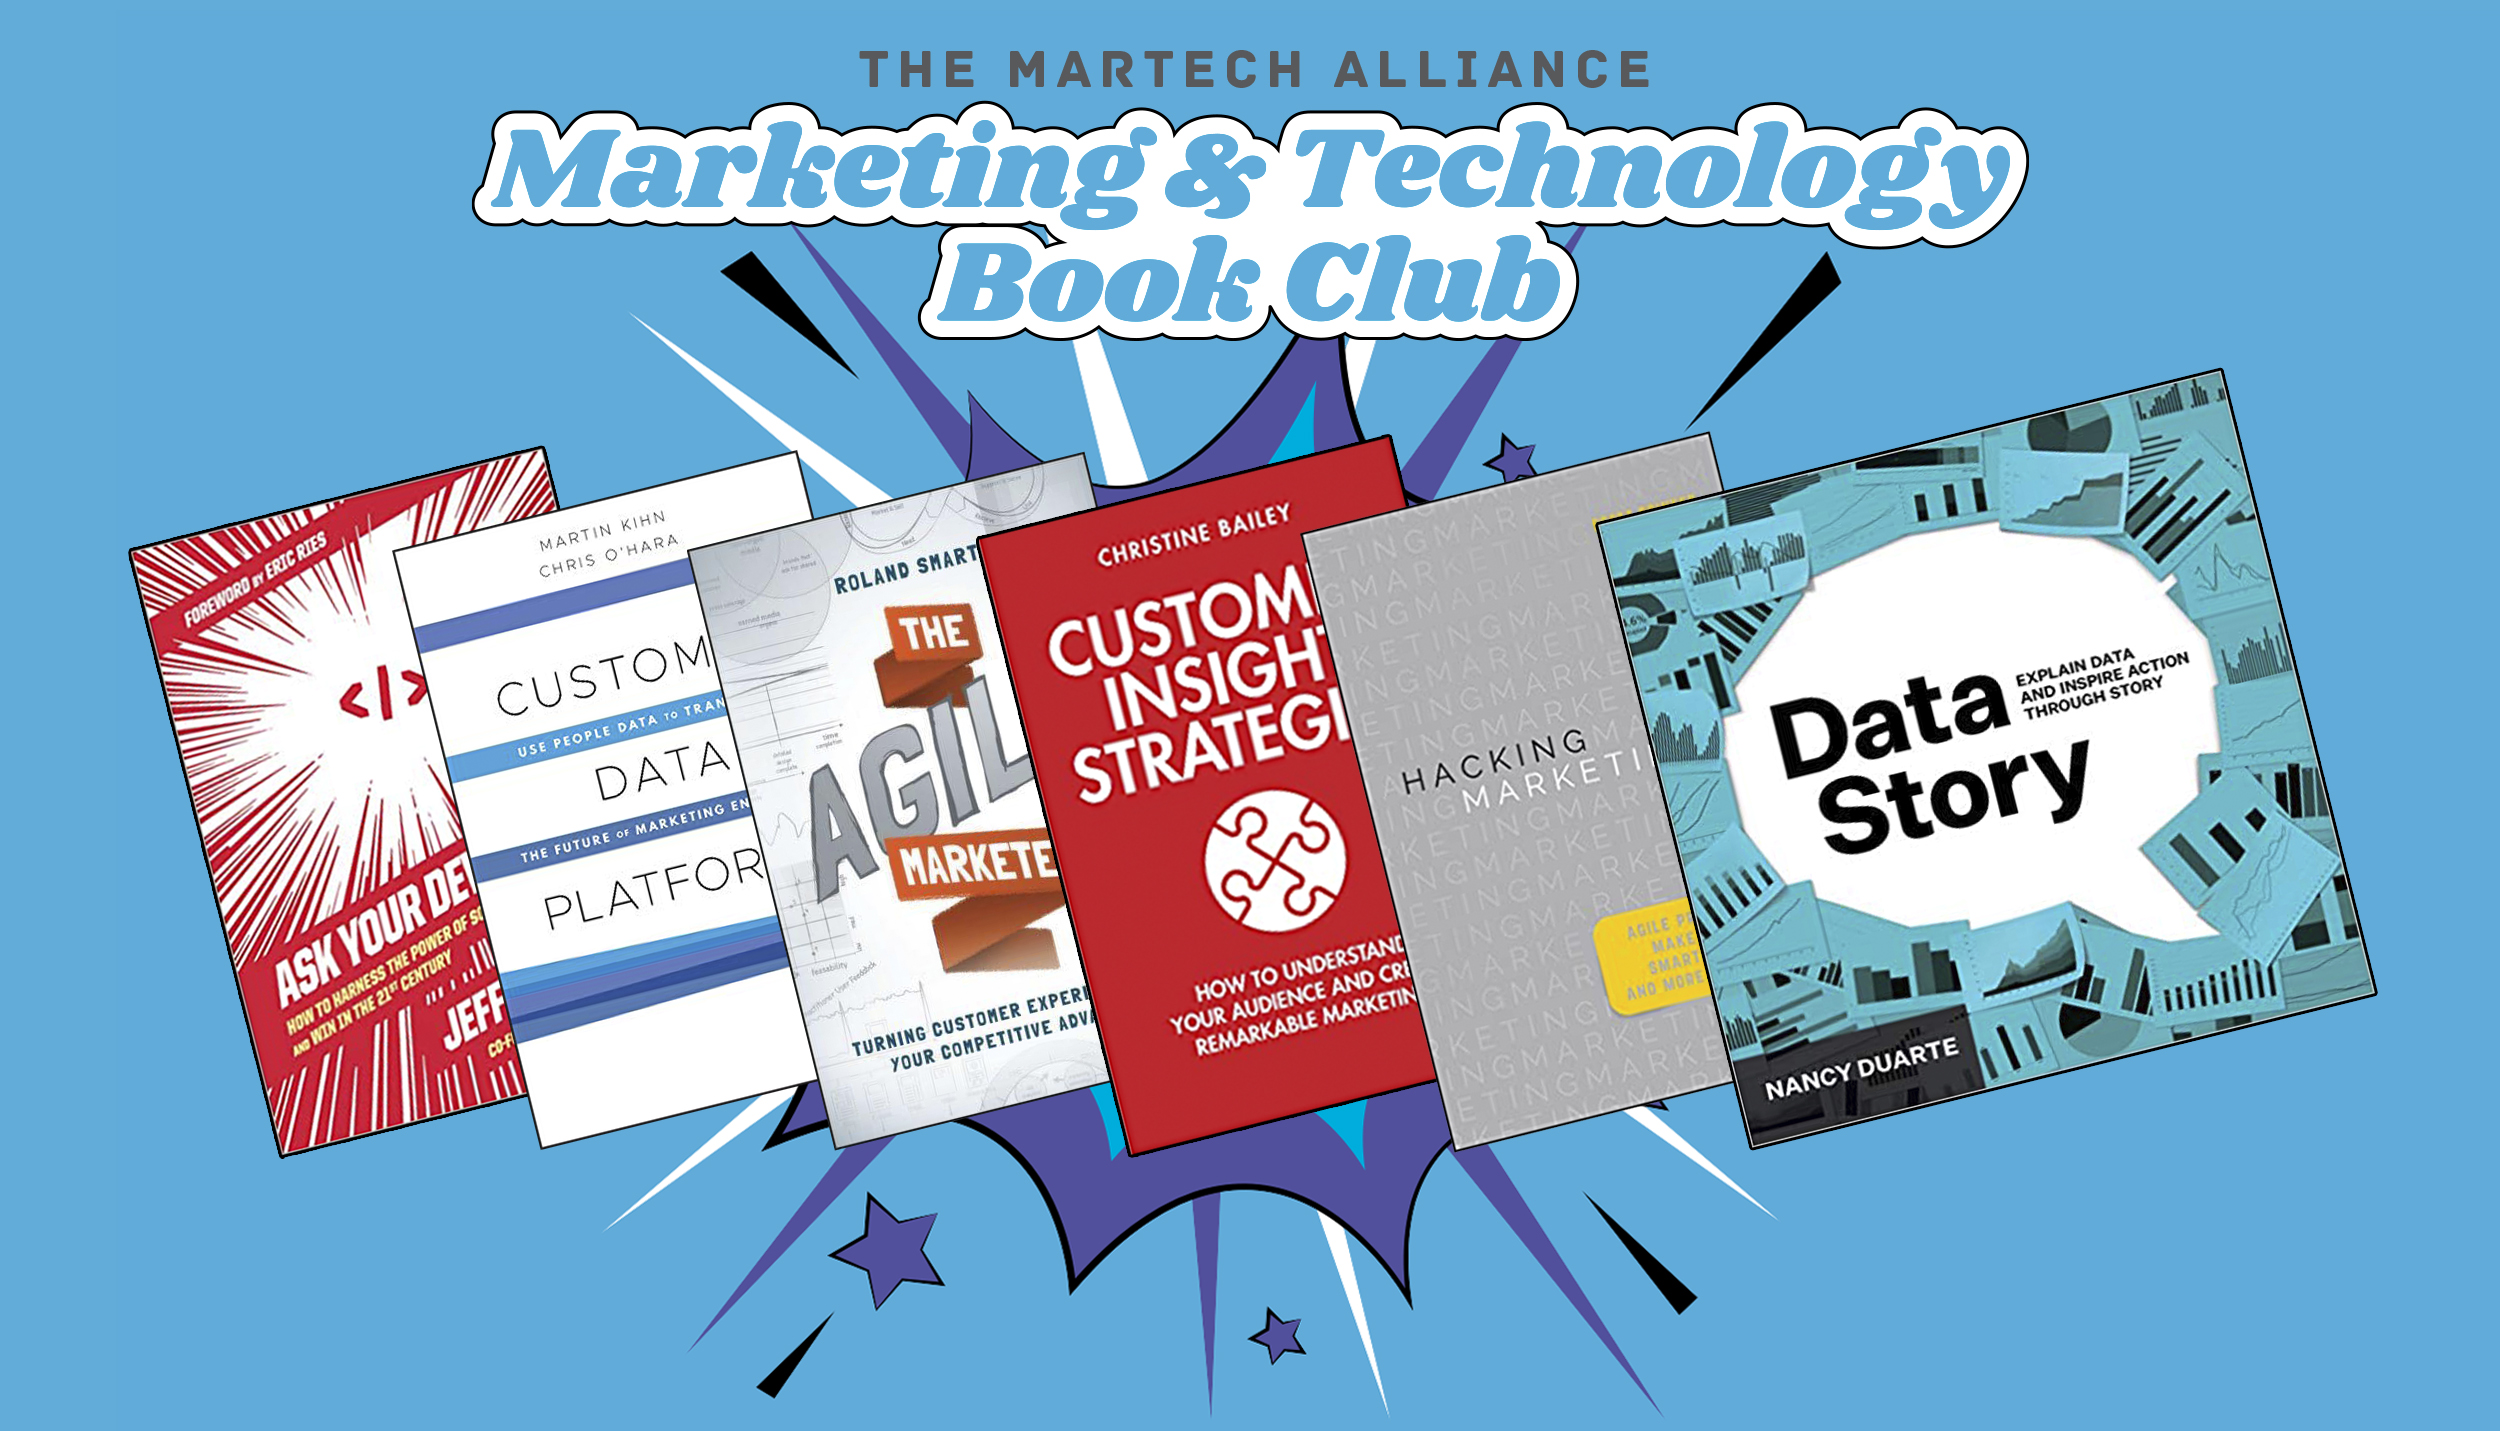 Top Martech Books